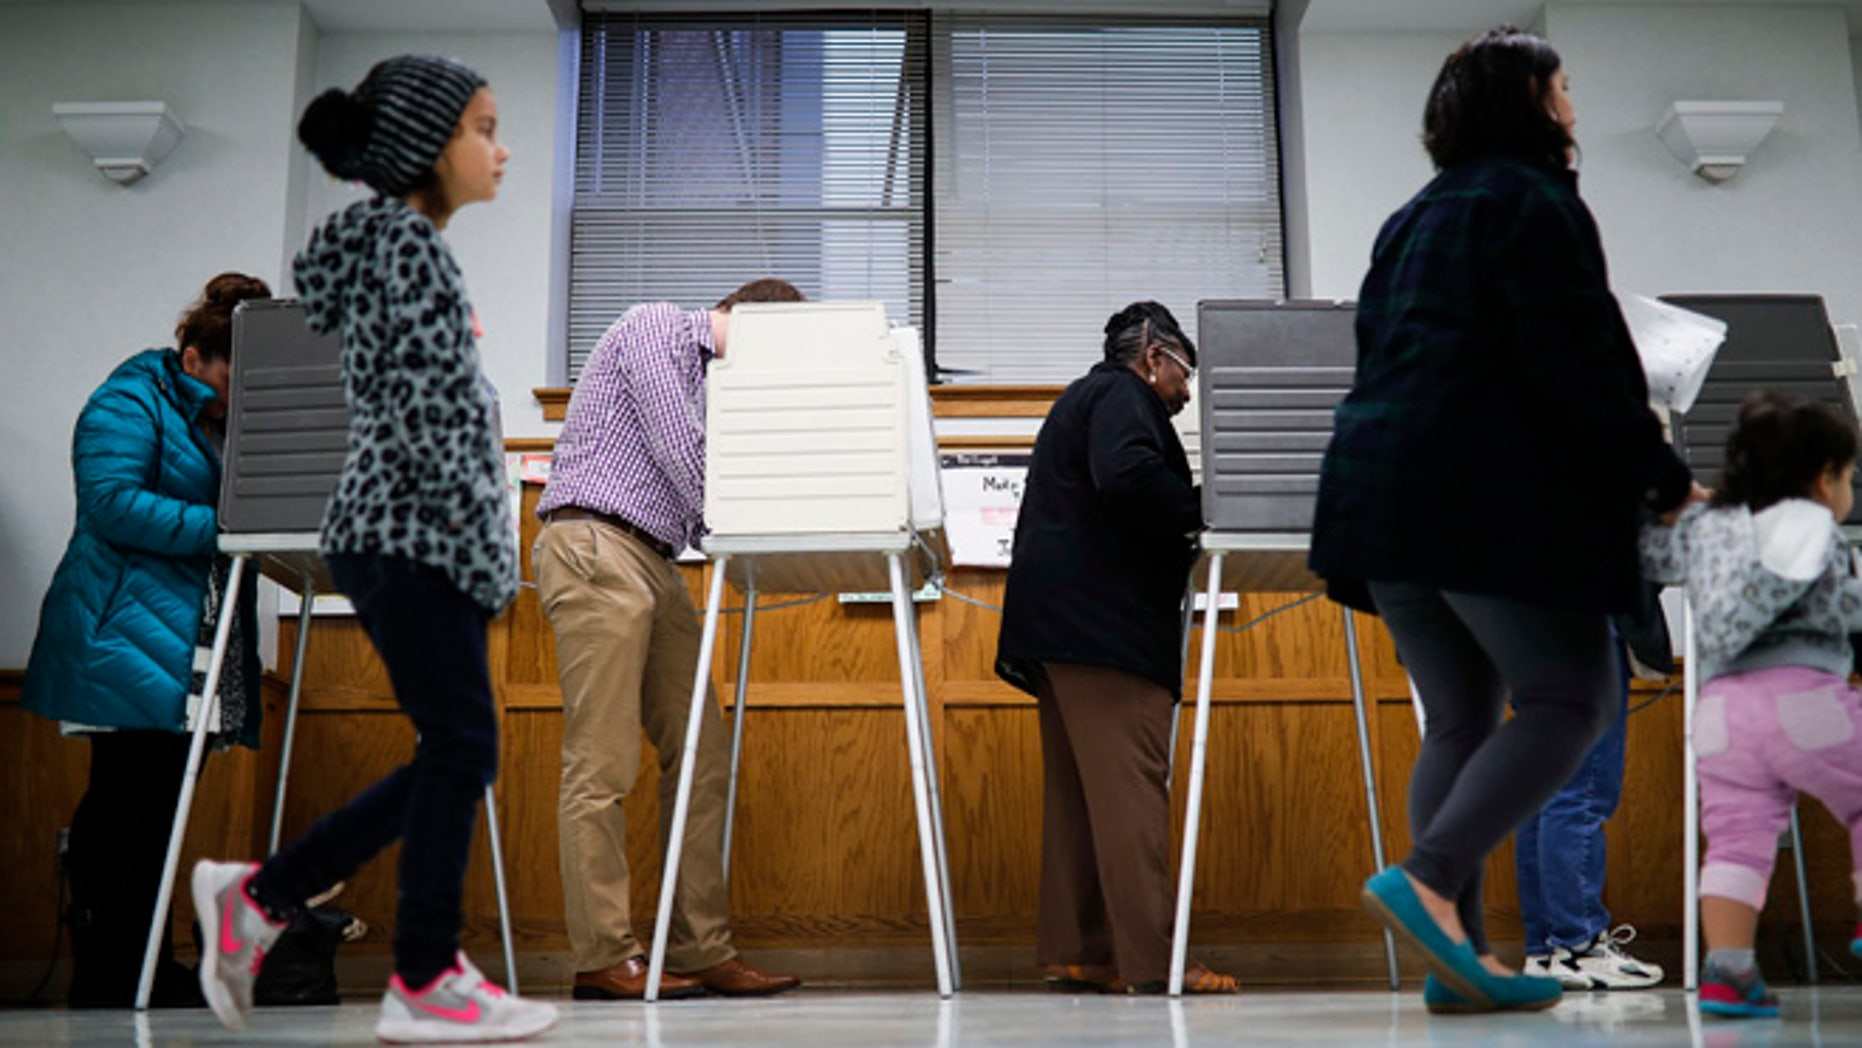 Voters fill out their ballots at the Nativity School polling place on Election Day, Tuesday, Nov. 8, 2016, in Cincinnati. (AP Photo/John Minchillo)